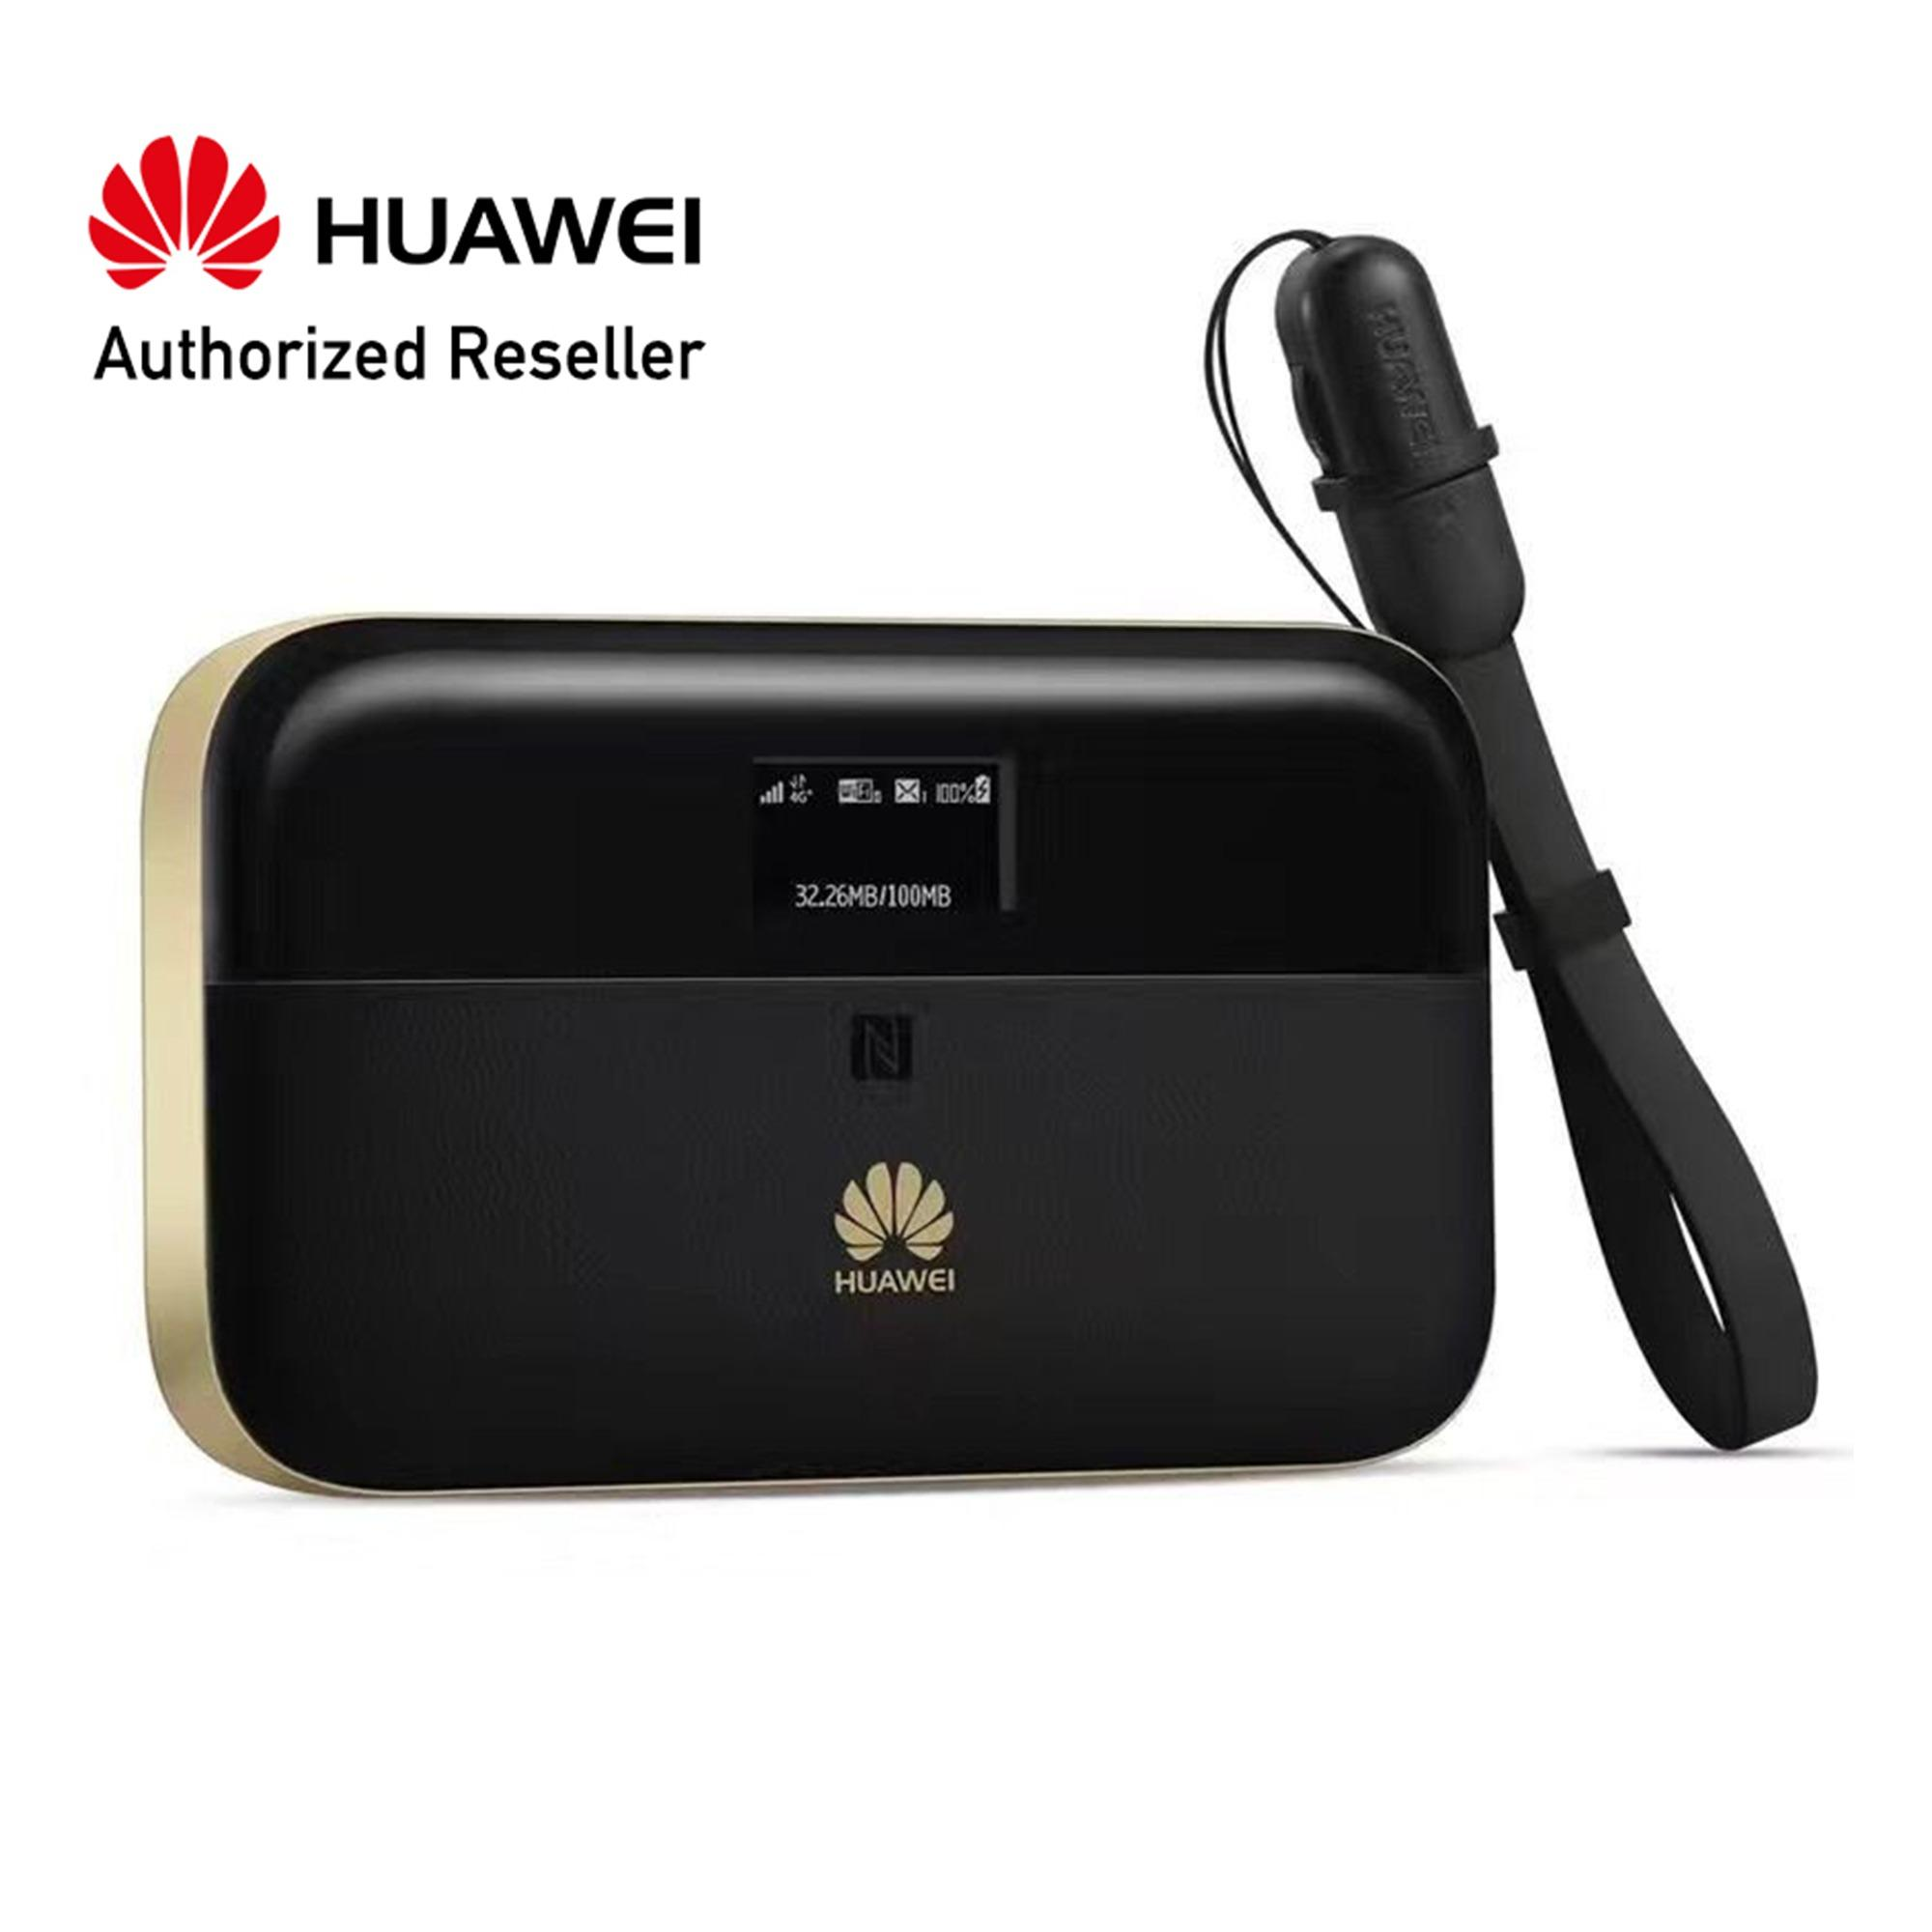 Latest Huawei Mobile Broadband Products Enjoy Huge Discounts Modem Wifi Wingle E8372 Speed 150mbps 4g Lte Cat4 Wi Fi Dongle E5885 Cat 6 300mbps Dual Band Nfc Router